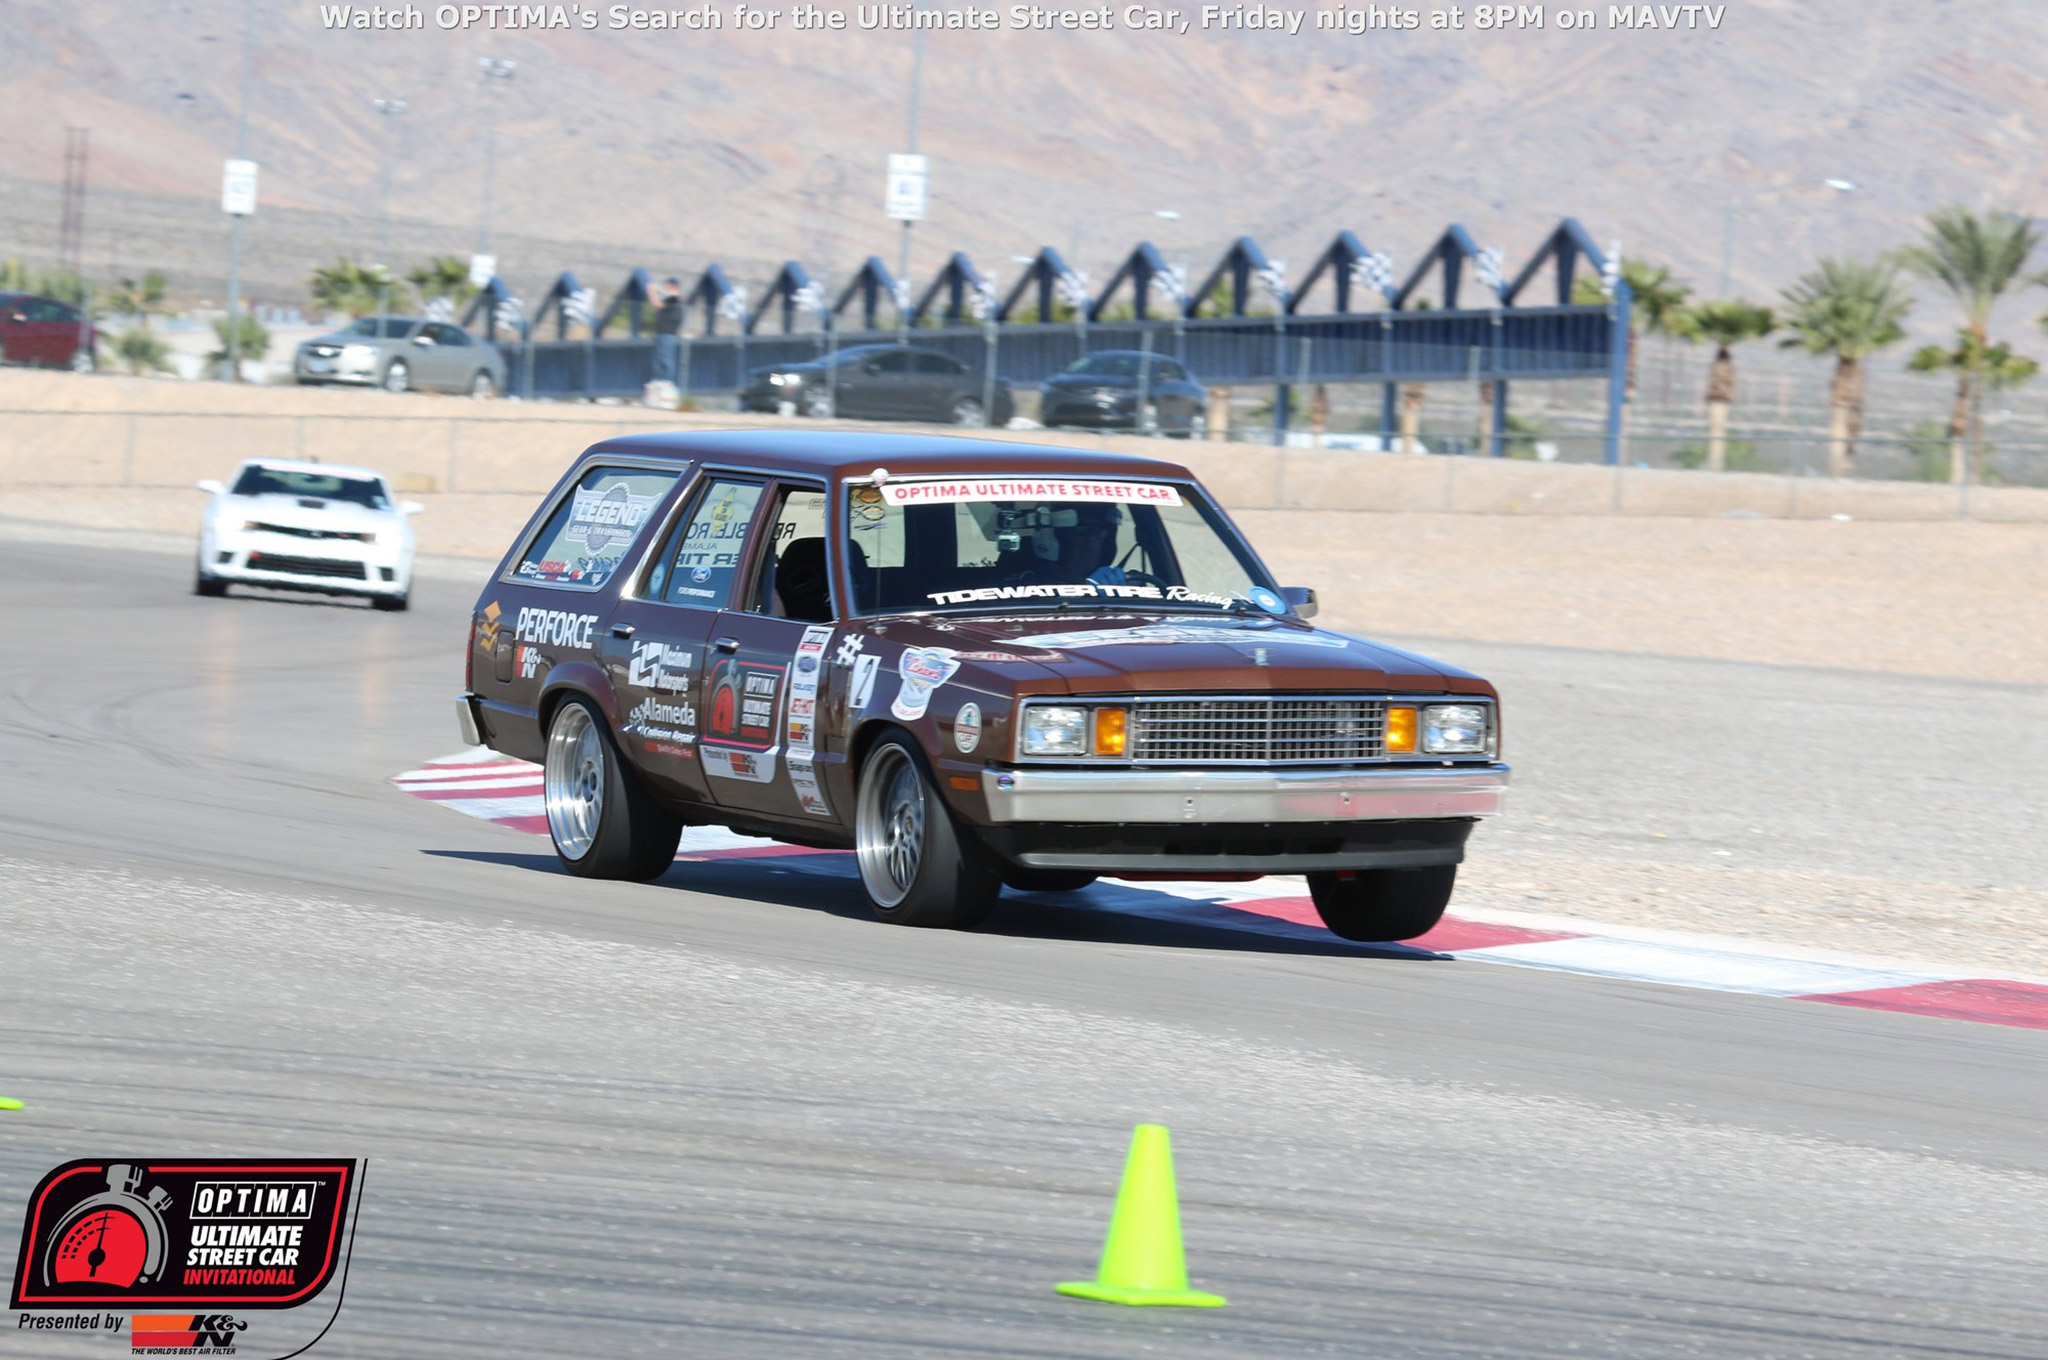 Martin Pond has a thing for four-eyed Fox body-era Fords. He competed in the 2014 OUSCI with a 1980 Ford Fairmont, but returned in 2015 with a bigger, browner stick. His '80 Mercury Zephyr features a 427 Cobra Jet crate engine, mated to an LGT-700 transmission and weighs in at less than 3,200 pounds. That helped him shave more than three seconds off his best lap time from 2014.